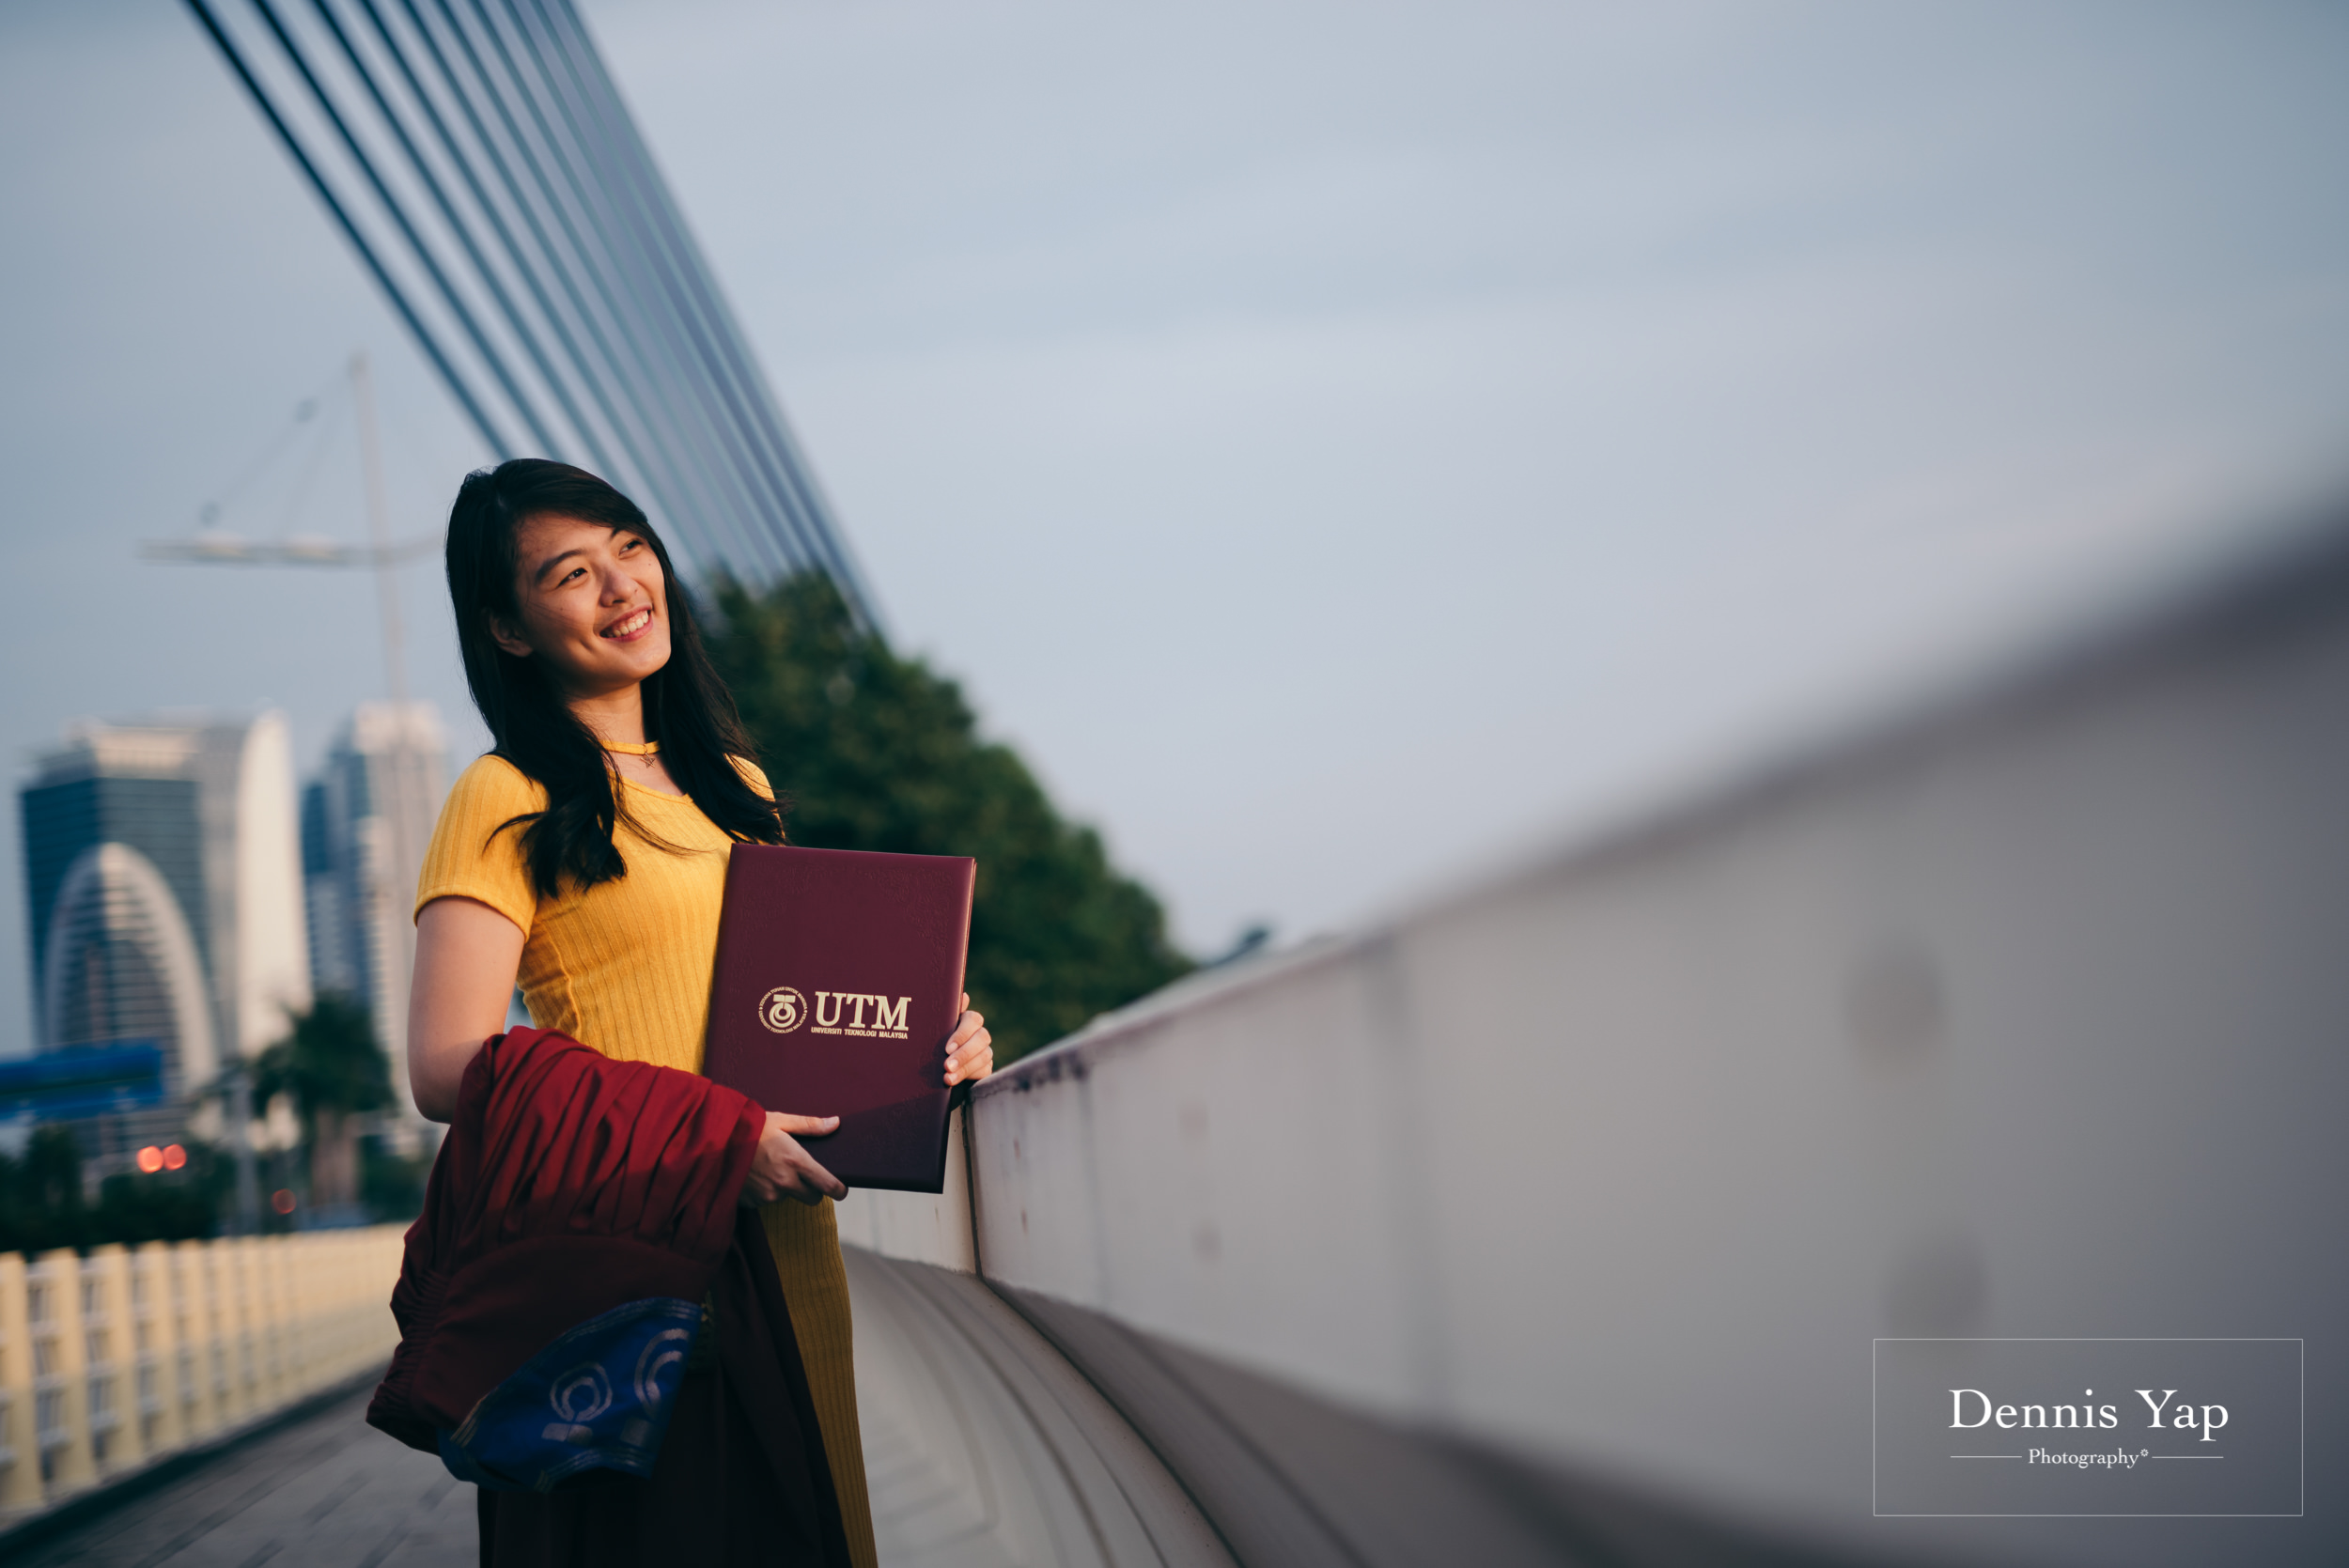 Tieng Wei graduation portrait putrajaya dennis yap photography family portraiture beloved uitm-123.jpg